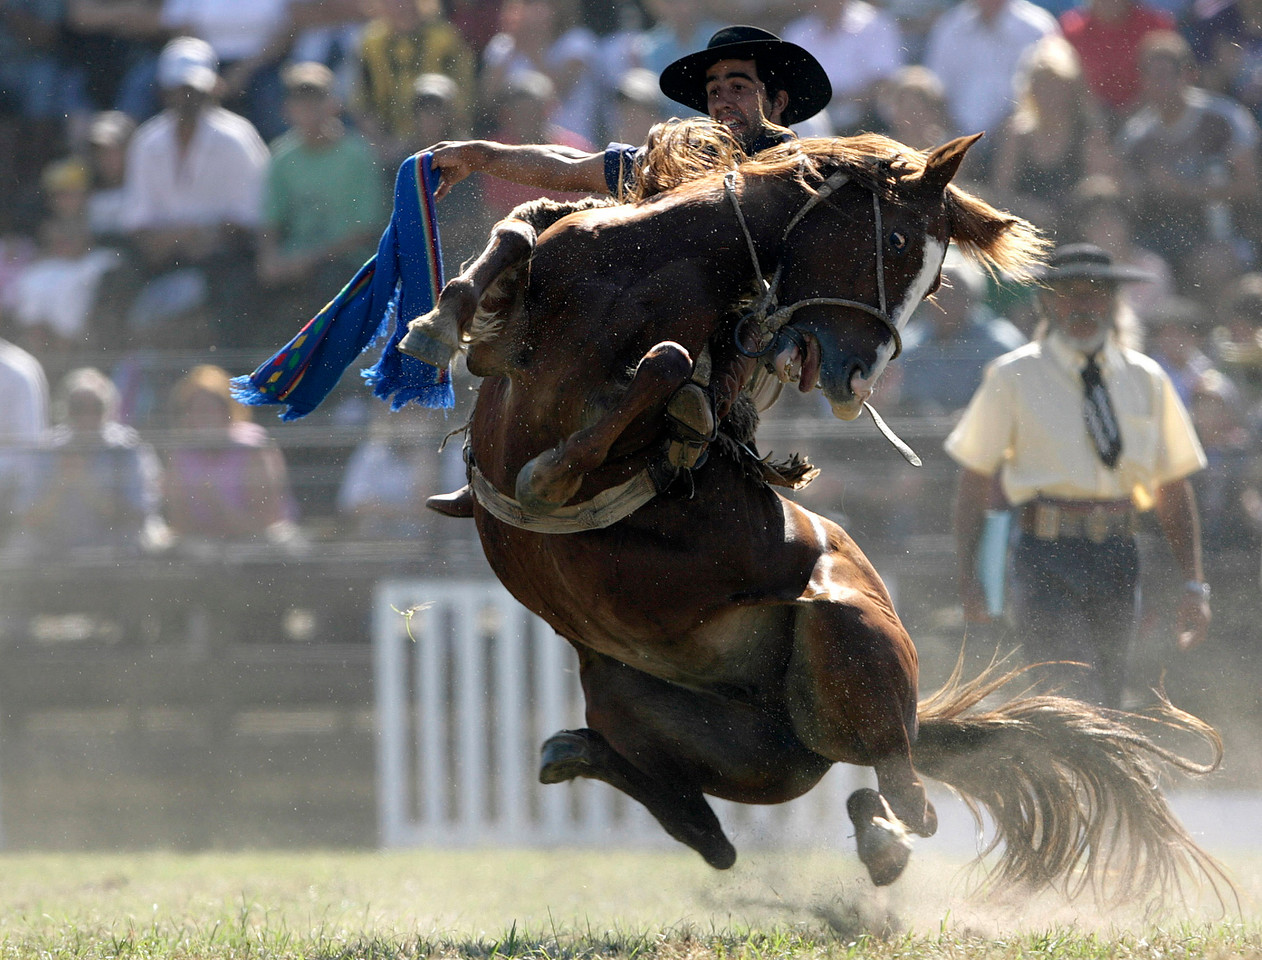 A gaucho rides an untamed horse during the celebration of Criolla (Creole) Week in Montevideo April 6, 2009. Gauchos all over the country came to Montevideo during Creole Week to compete for the award of best rider.  REUTERS/Andres Stapff